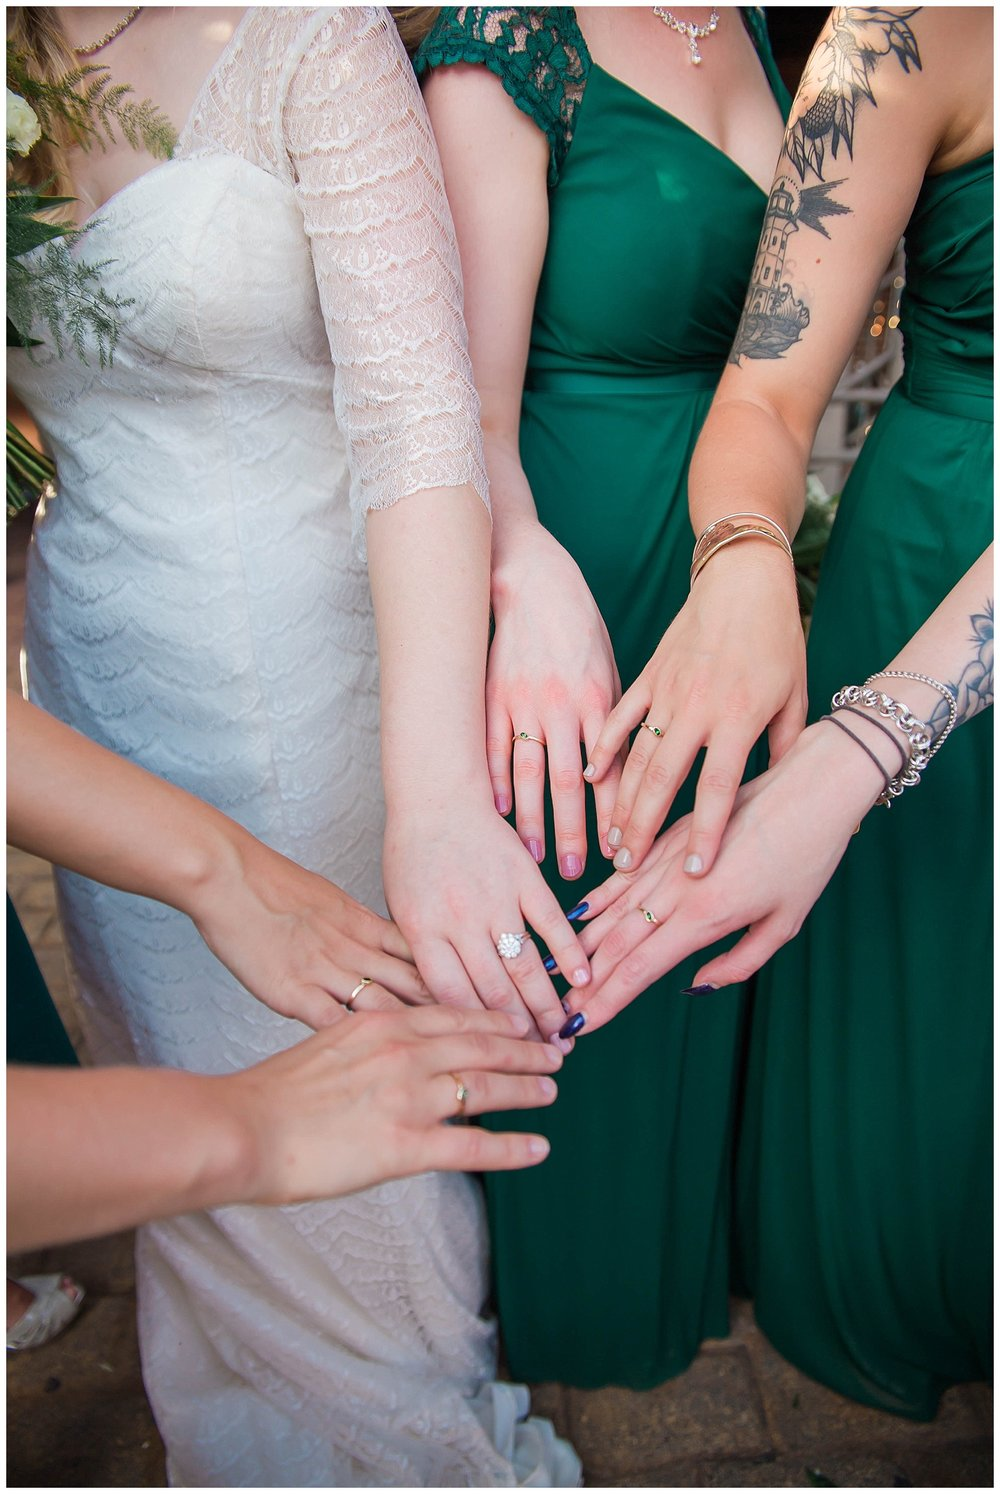 Haley hand-made a ring for each of her bridesmaids in her wedding colors!